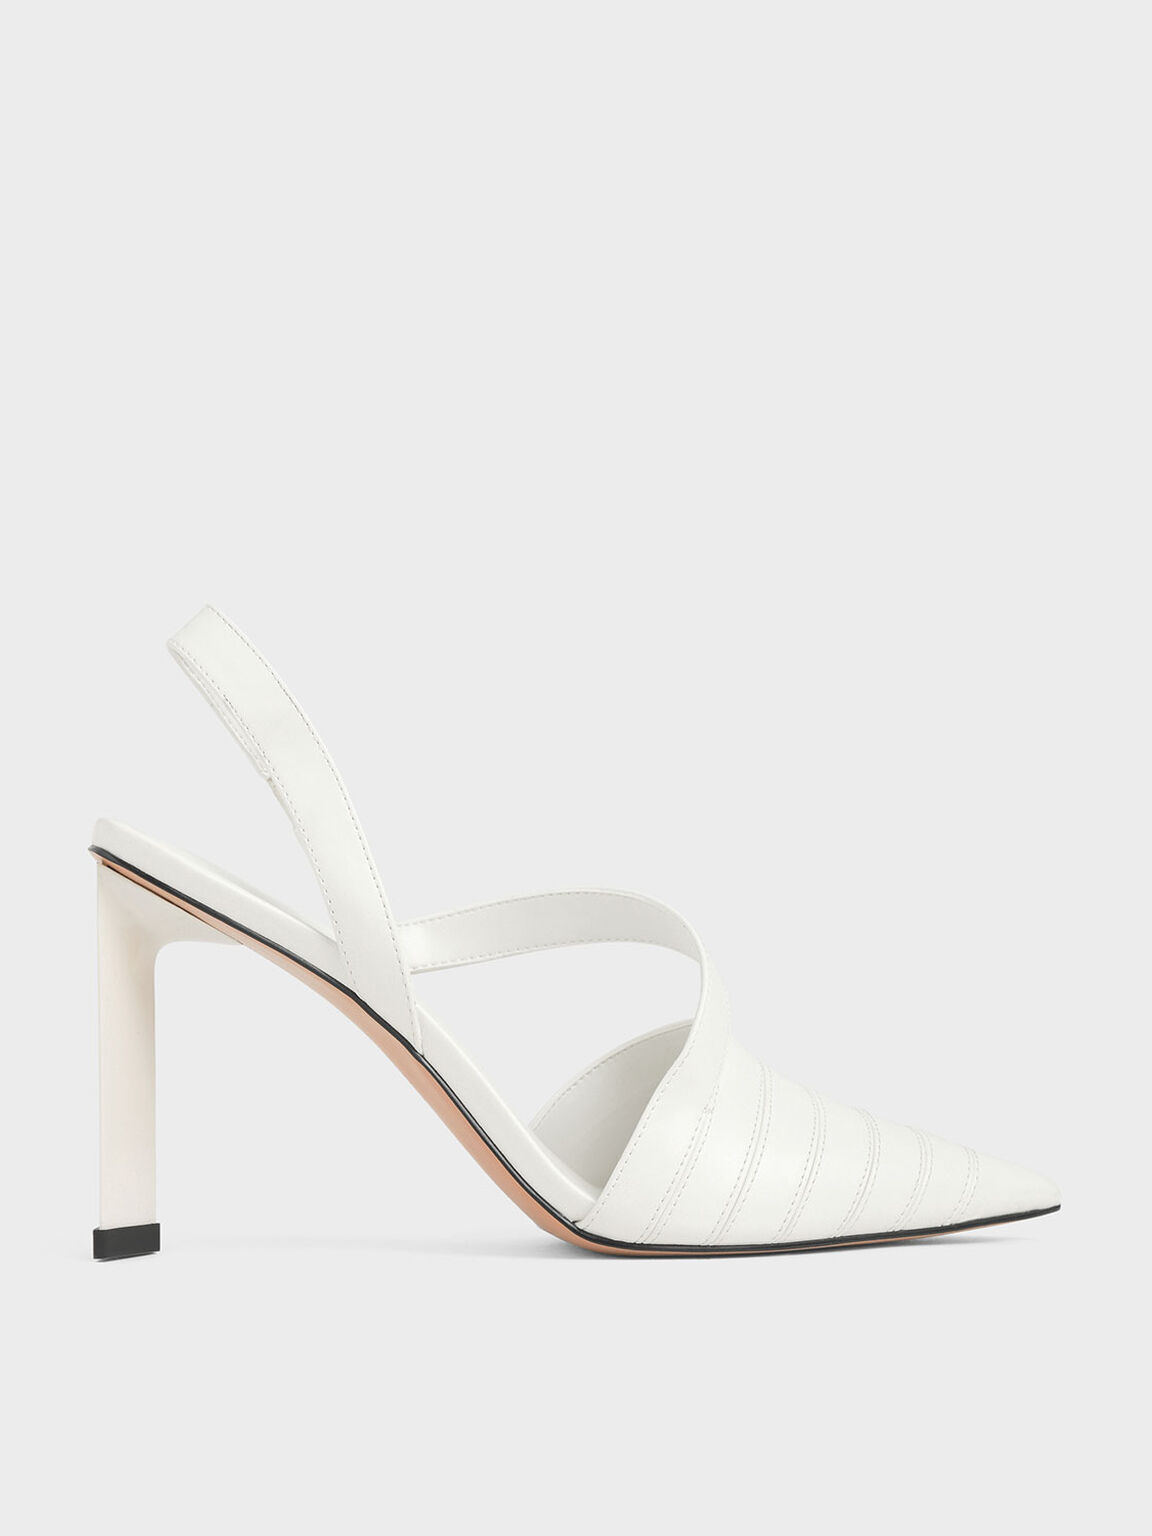 Asymmetric Slingback Pumps, White, hi-res